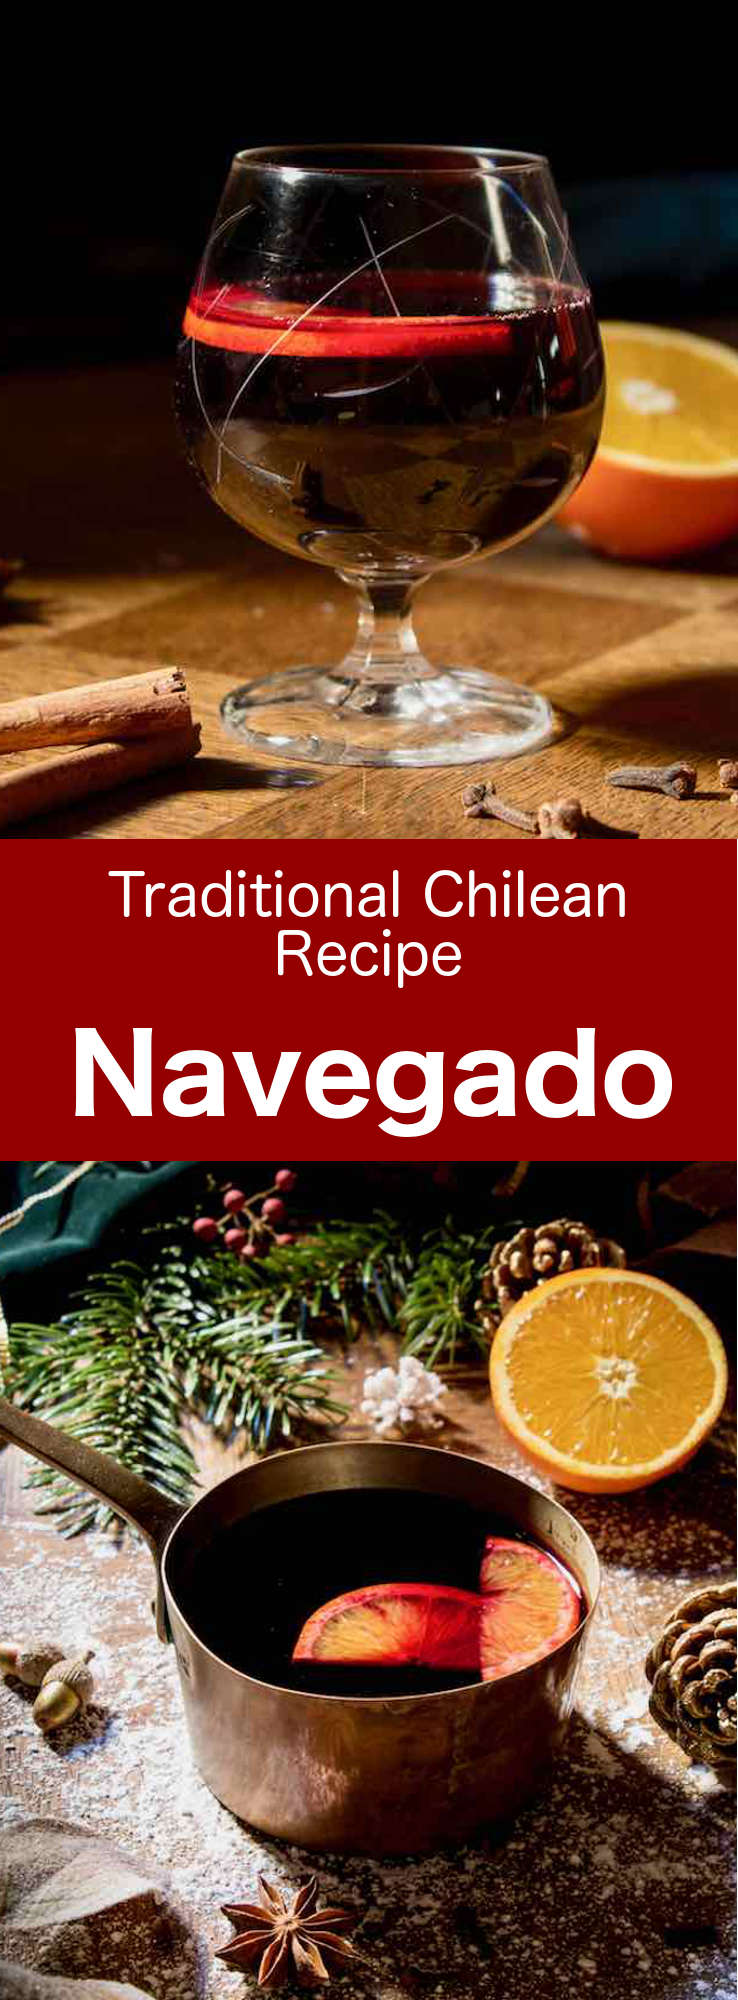 Navegado, navega'o, or vino navegado is a popular alcoholic beverage from southern Chile, which is prepared from a blend of red wine, orange slices, sugar and spices. #Chile #ChileanCuisine #ChileanRecipe #ChileanFood #WorldCuisine #196flavors